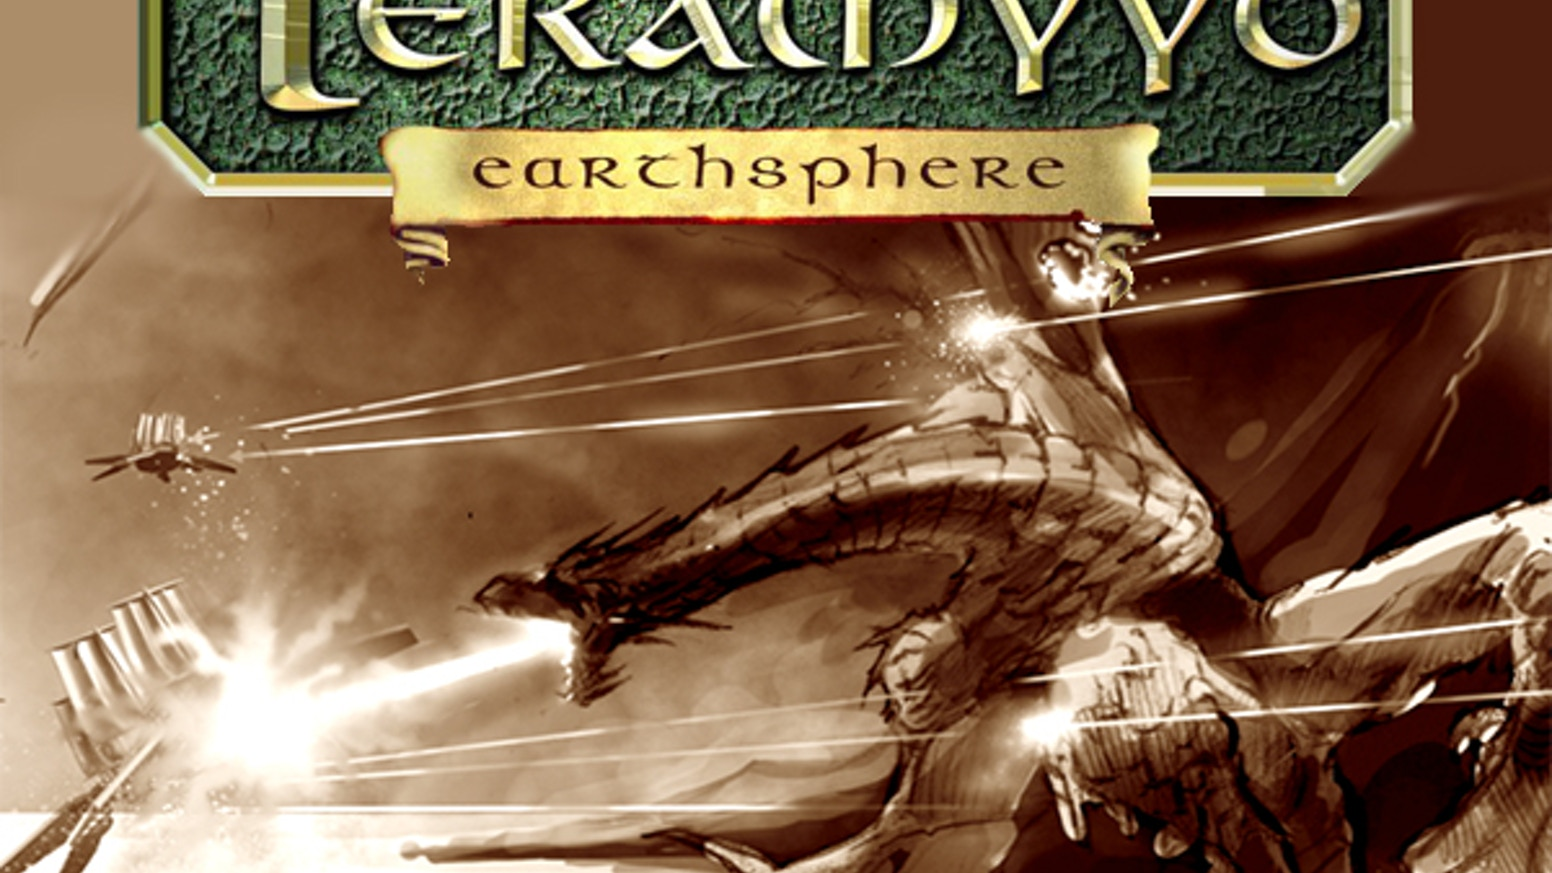 An epic steampunk/fantasy/monster-fighting game of aeronautical questing! Battle sky pirates or become one in the world of Teramyyd.